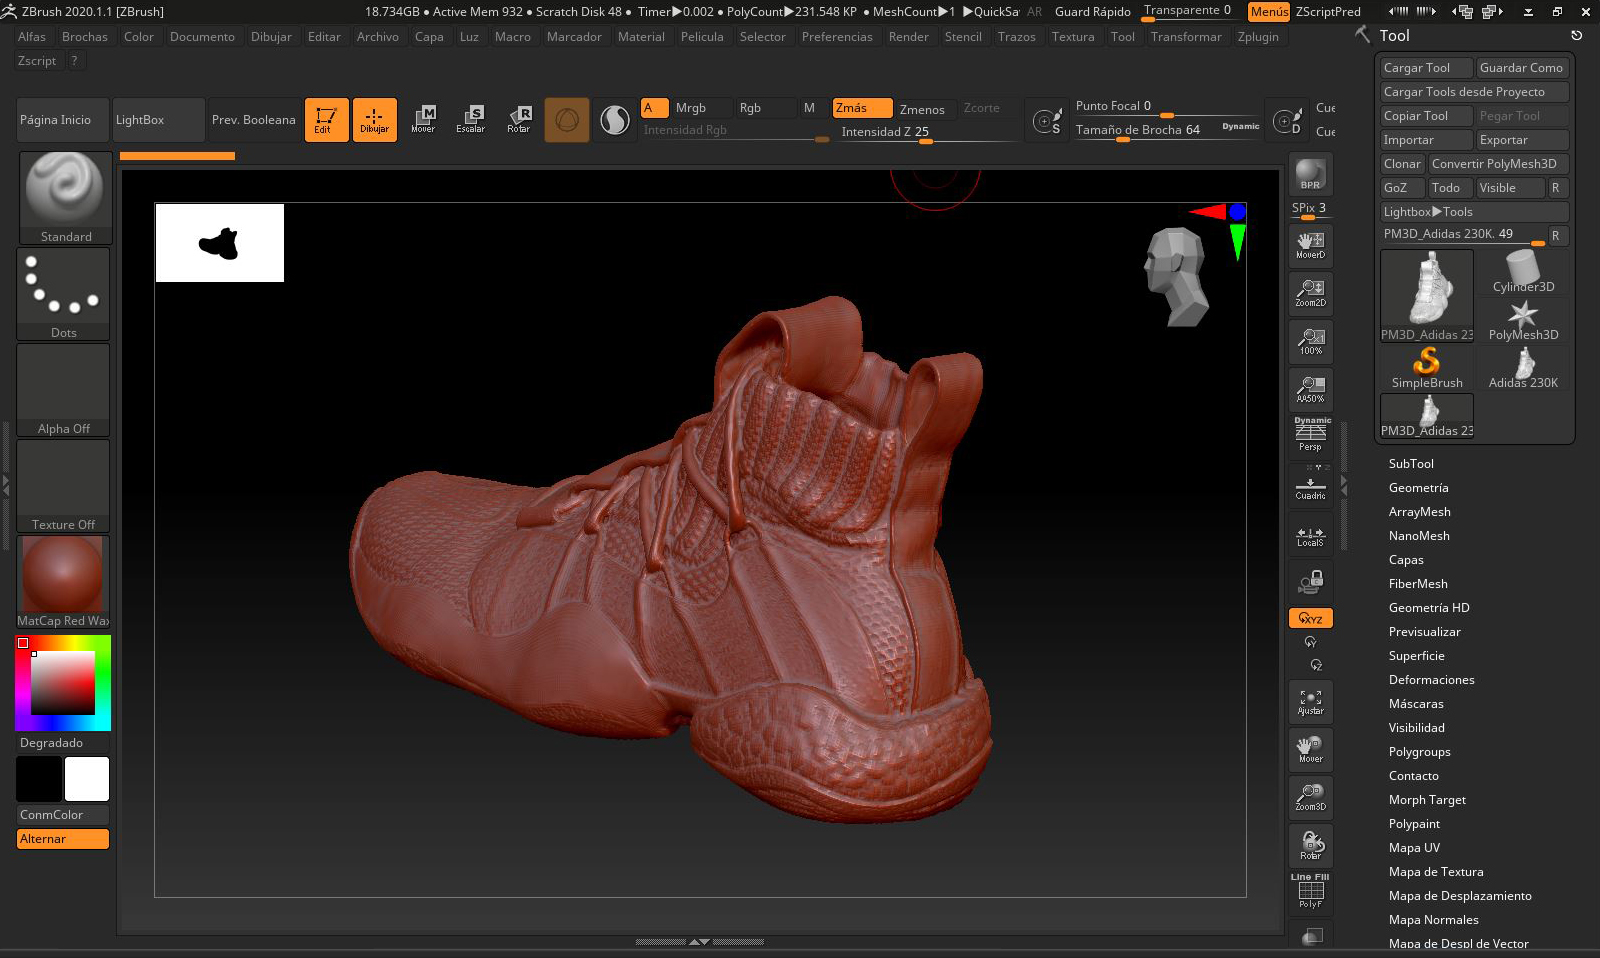 Z-Brush - 3D modelling software and the latest advances in rendering engines, which allow for greater complexity in 3D images.